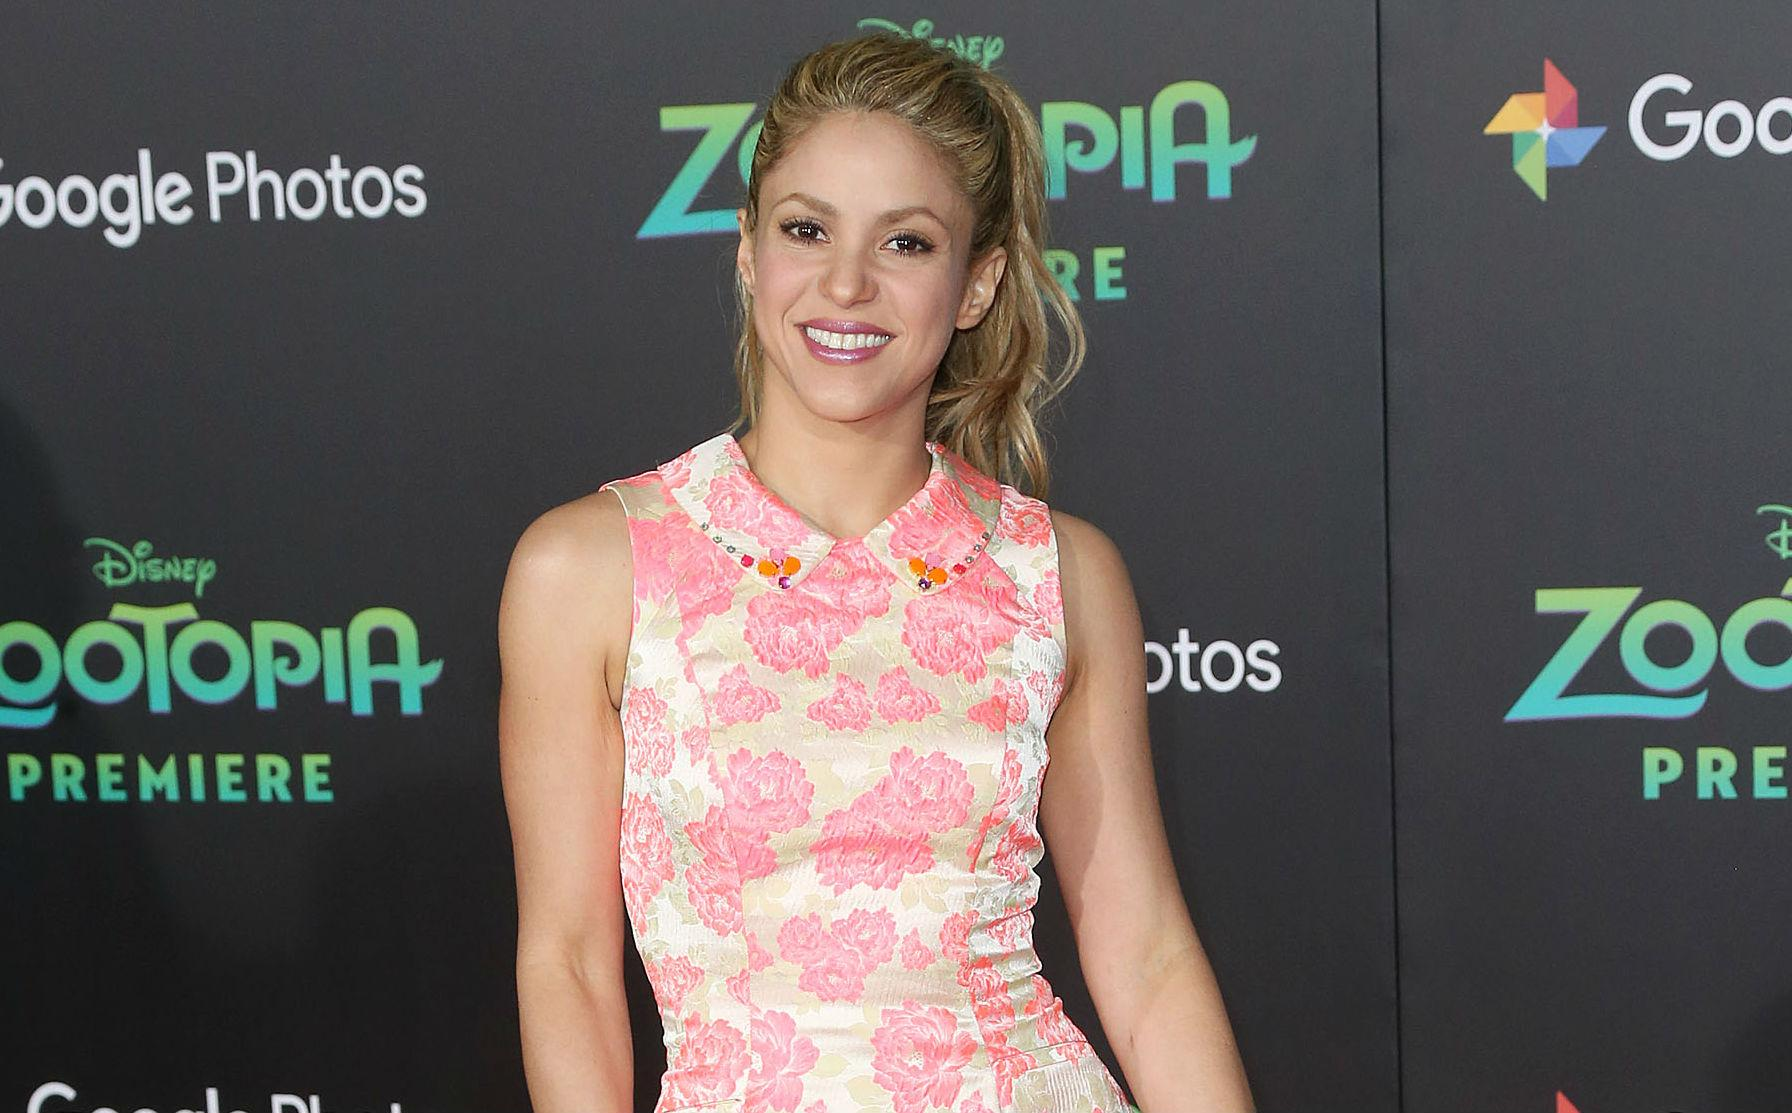 Shakira postpones tour, reschedules dates including Chicago